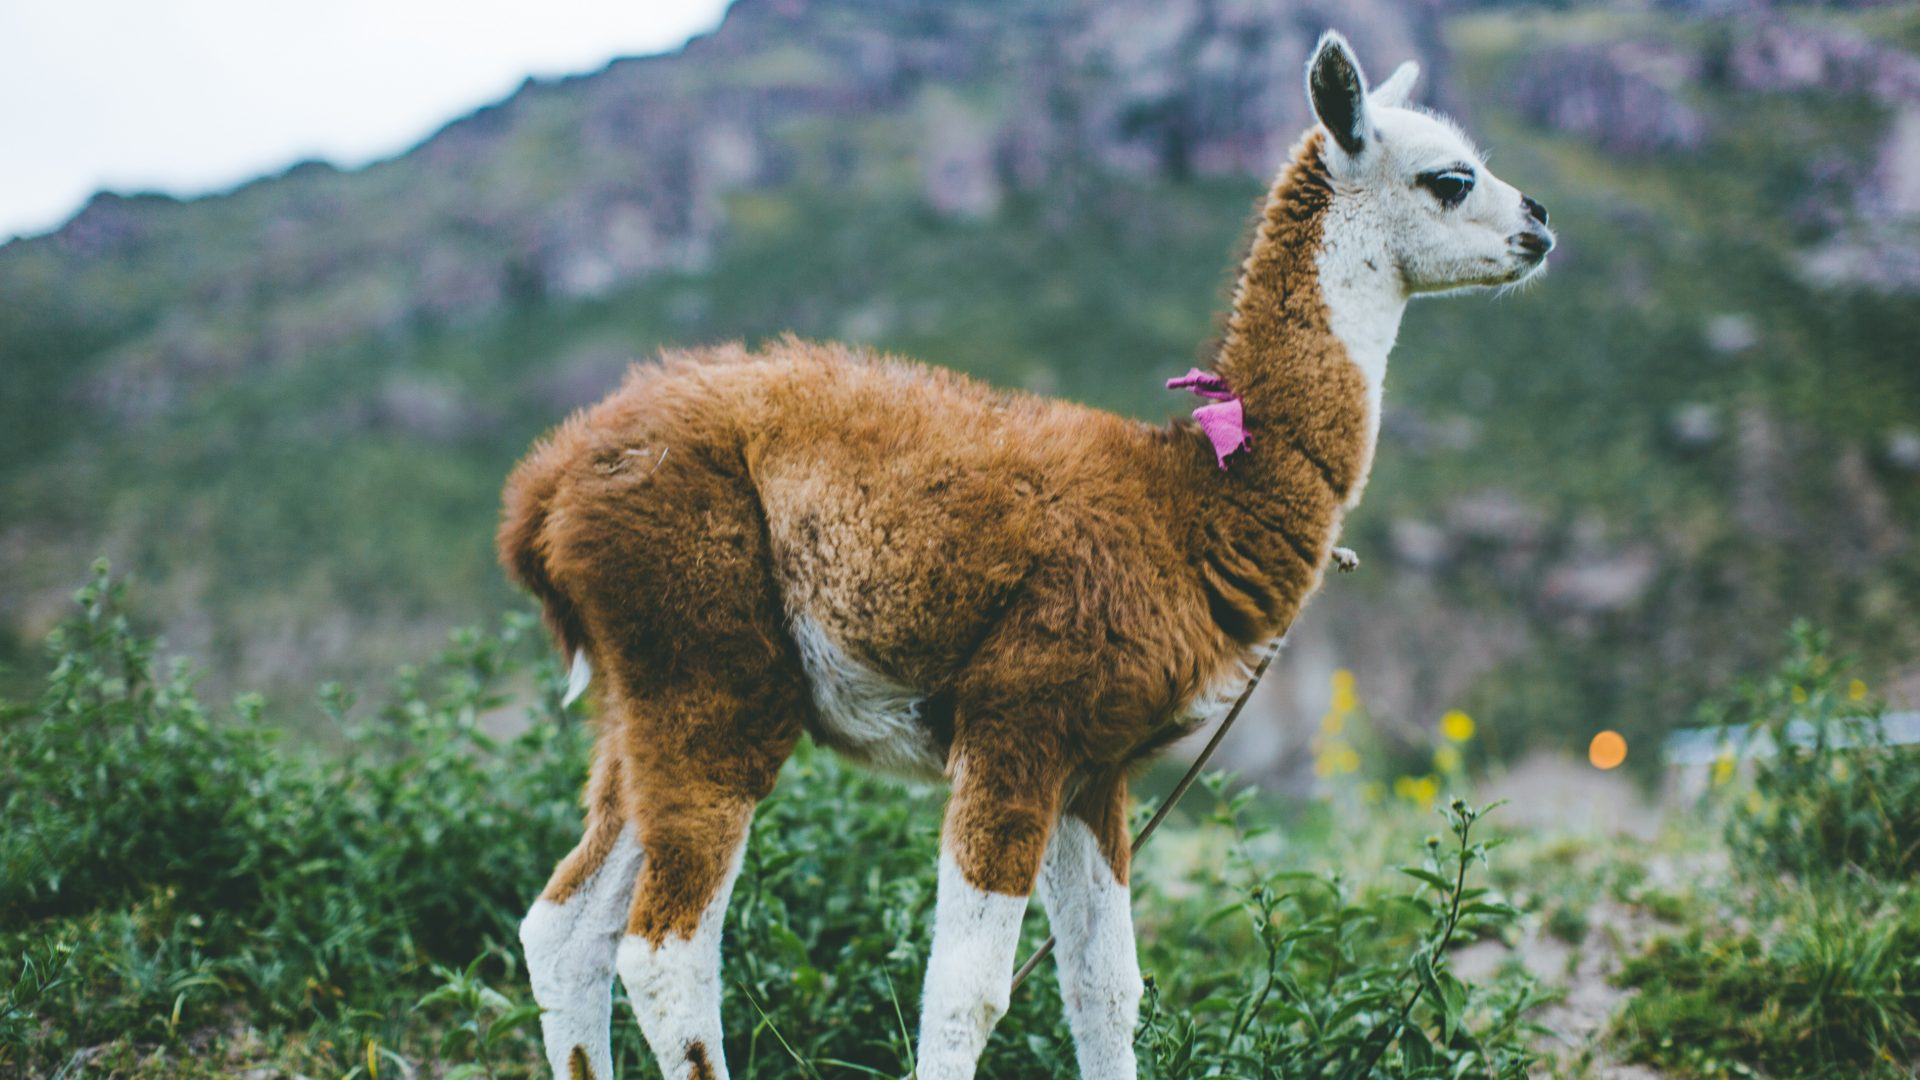 This baby alpaca was on the periphery of the fields as well as other livestock and dot the landscape. These animals, endemic to Peru make the landscape look try to country.